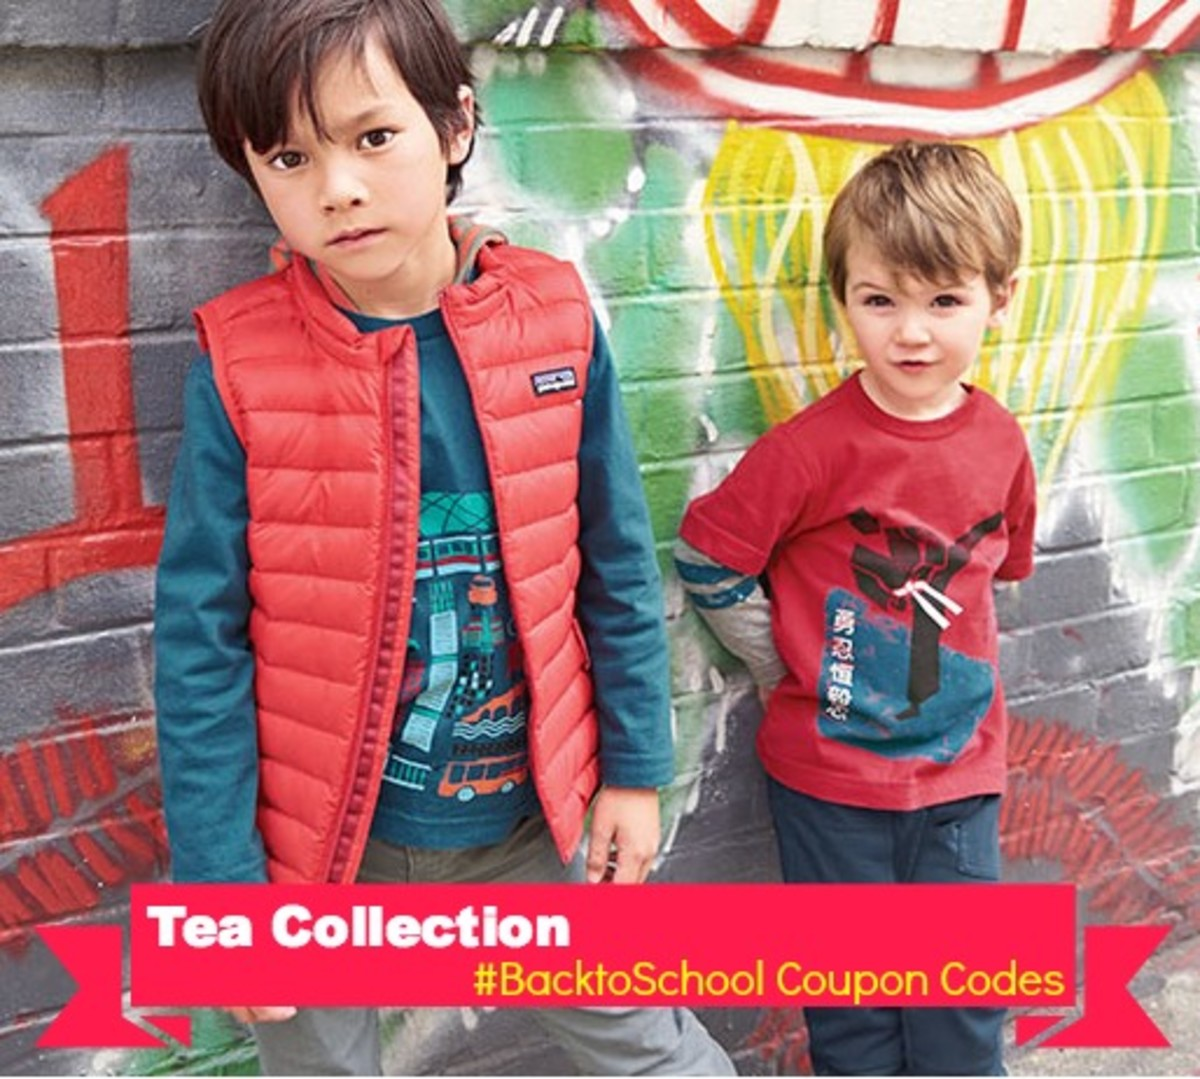 back to school, tea collection, tea collection coupons